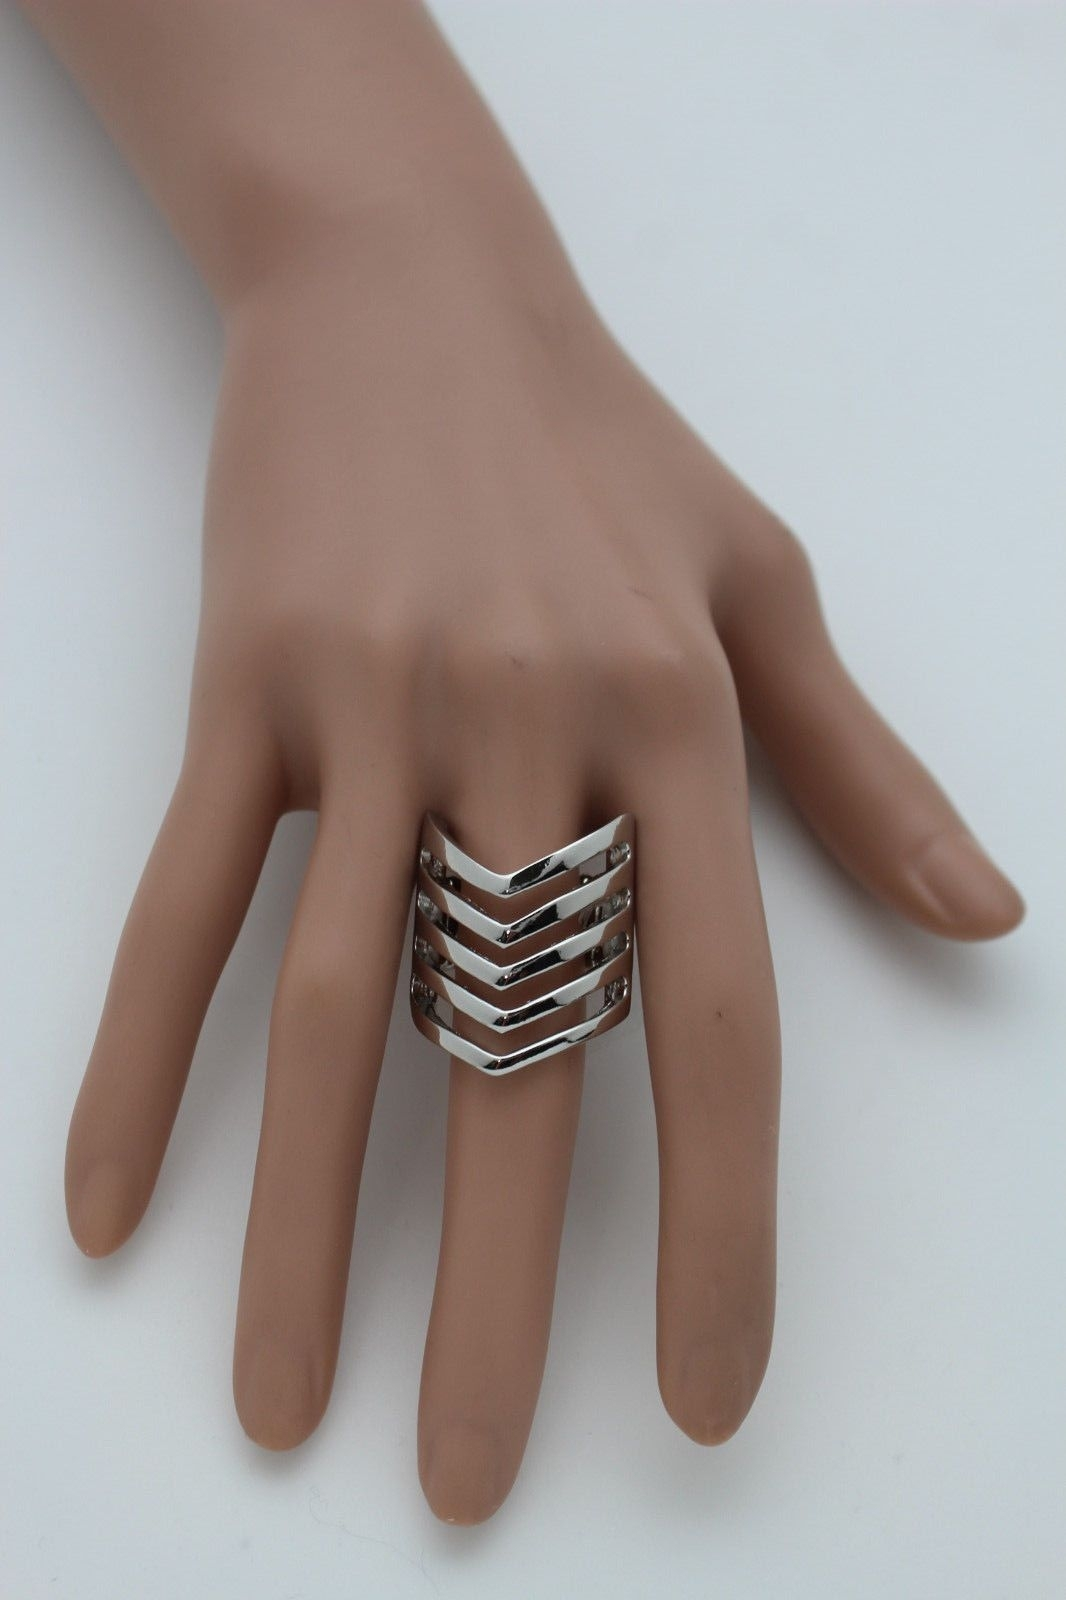 New Women Ring Fashion Jewelry Silver Metal Chevron Stripes Finger With Regard To Newest Chevron Finger Rings (View 13 of 15)